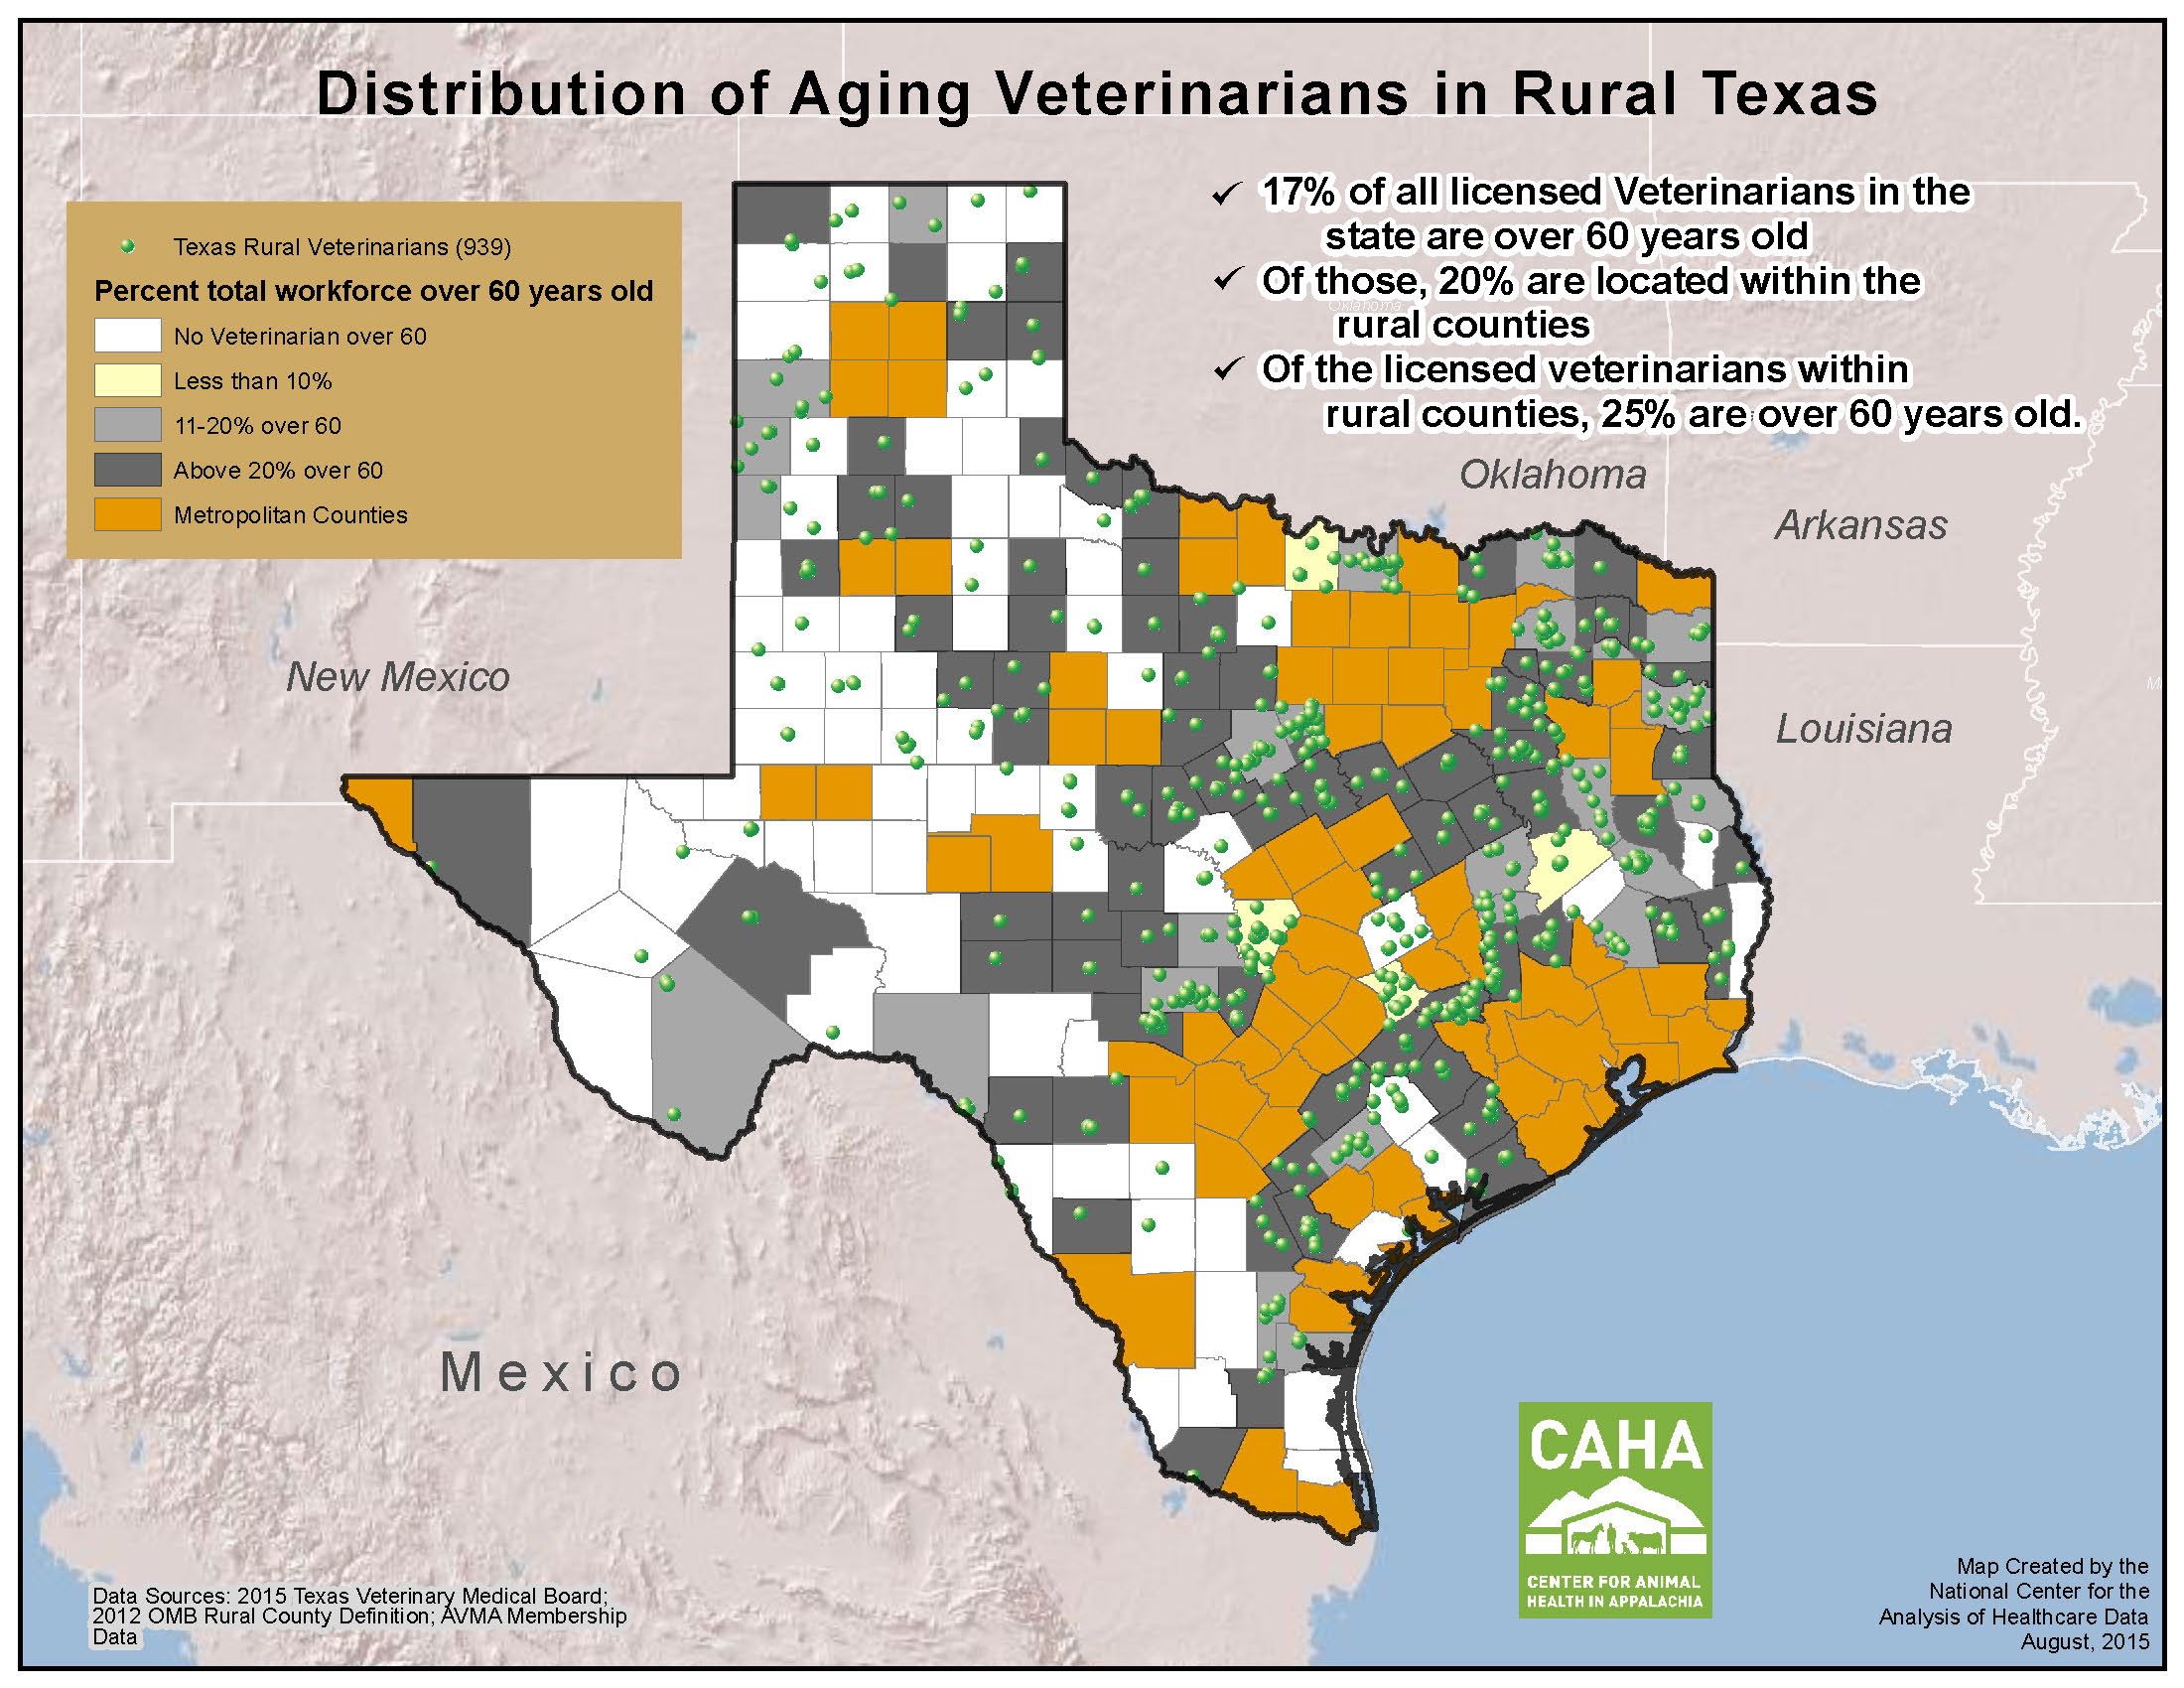 Texas Aging Vets 2015 updated